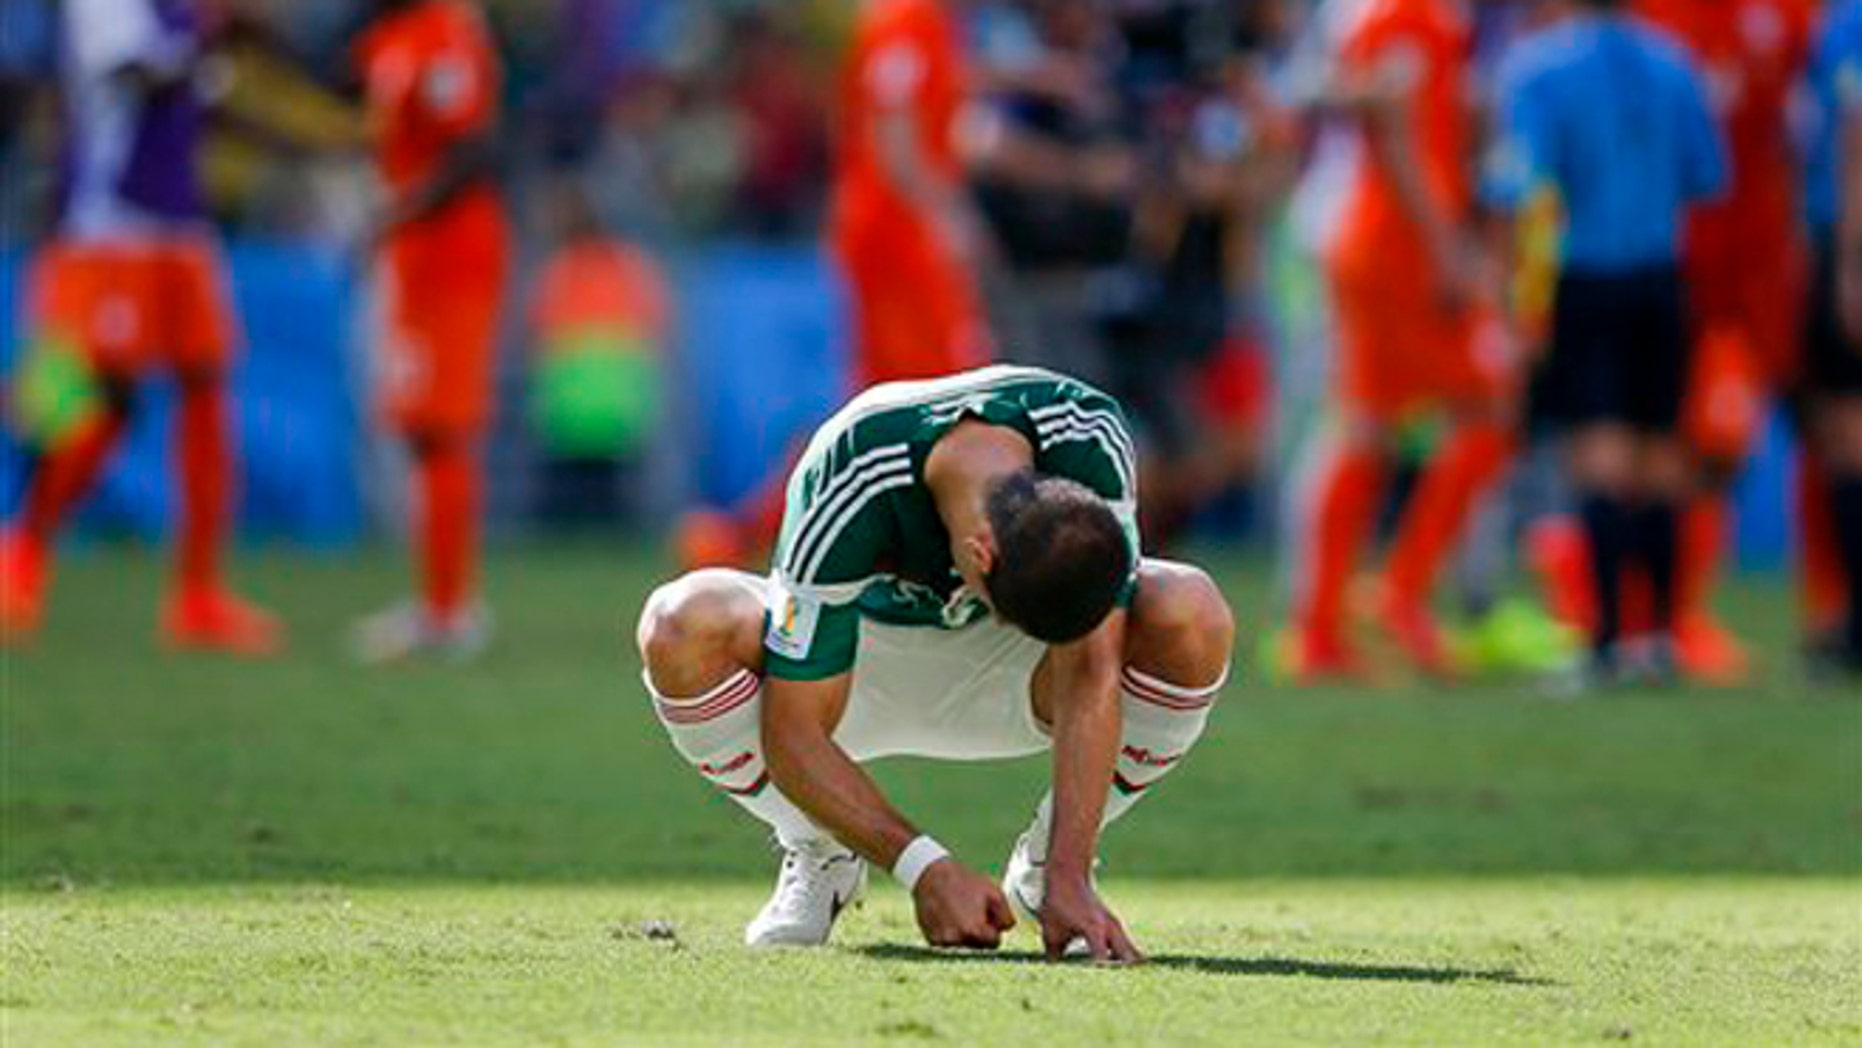 Mexico's Javier Hernandez punches the ground after the Netherlands defeated Mexico 2-1 to advance to the quarterfinals during the World Cup round of 16 soccer match between the Netherlands and Mexico at the Arena Castelao in Fortaleza, Brazil, Sunday, June 29, 2014. (AP Photo/Eduardo Verdugo)